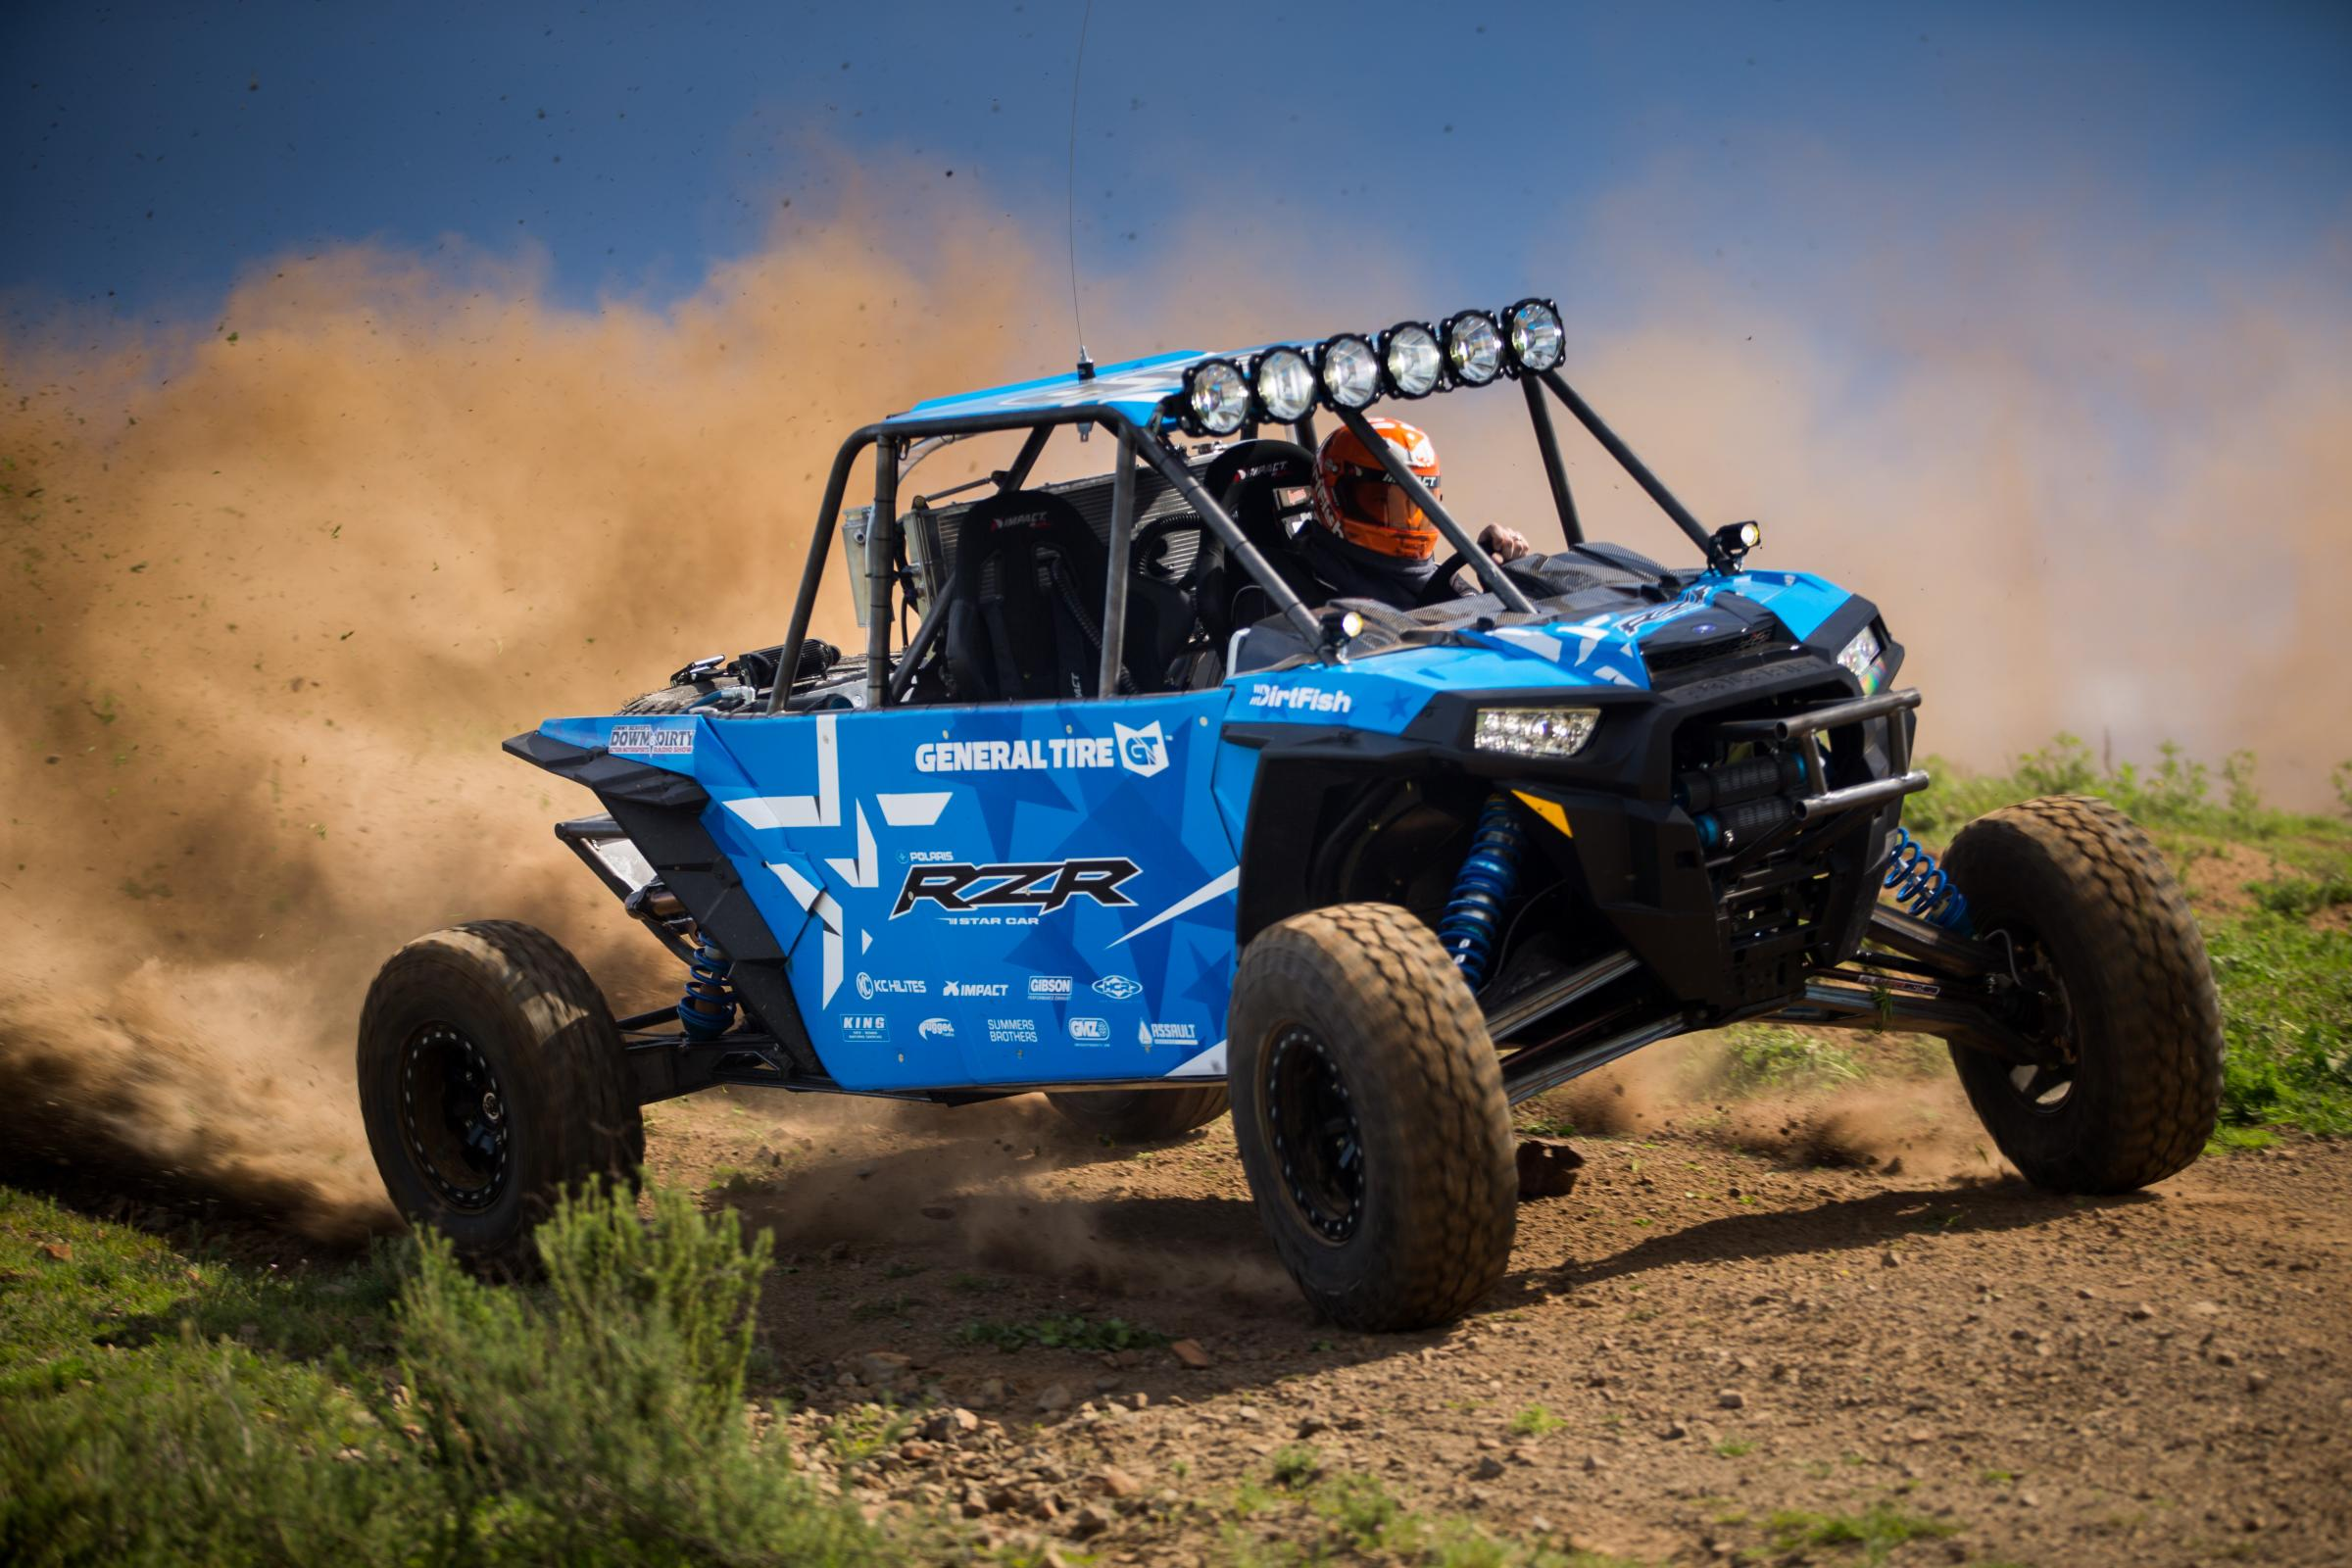 Champion racer Tanner Foust to guest drive Mint 400 in ...